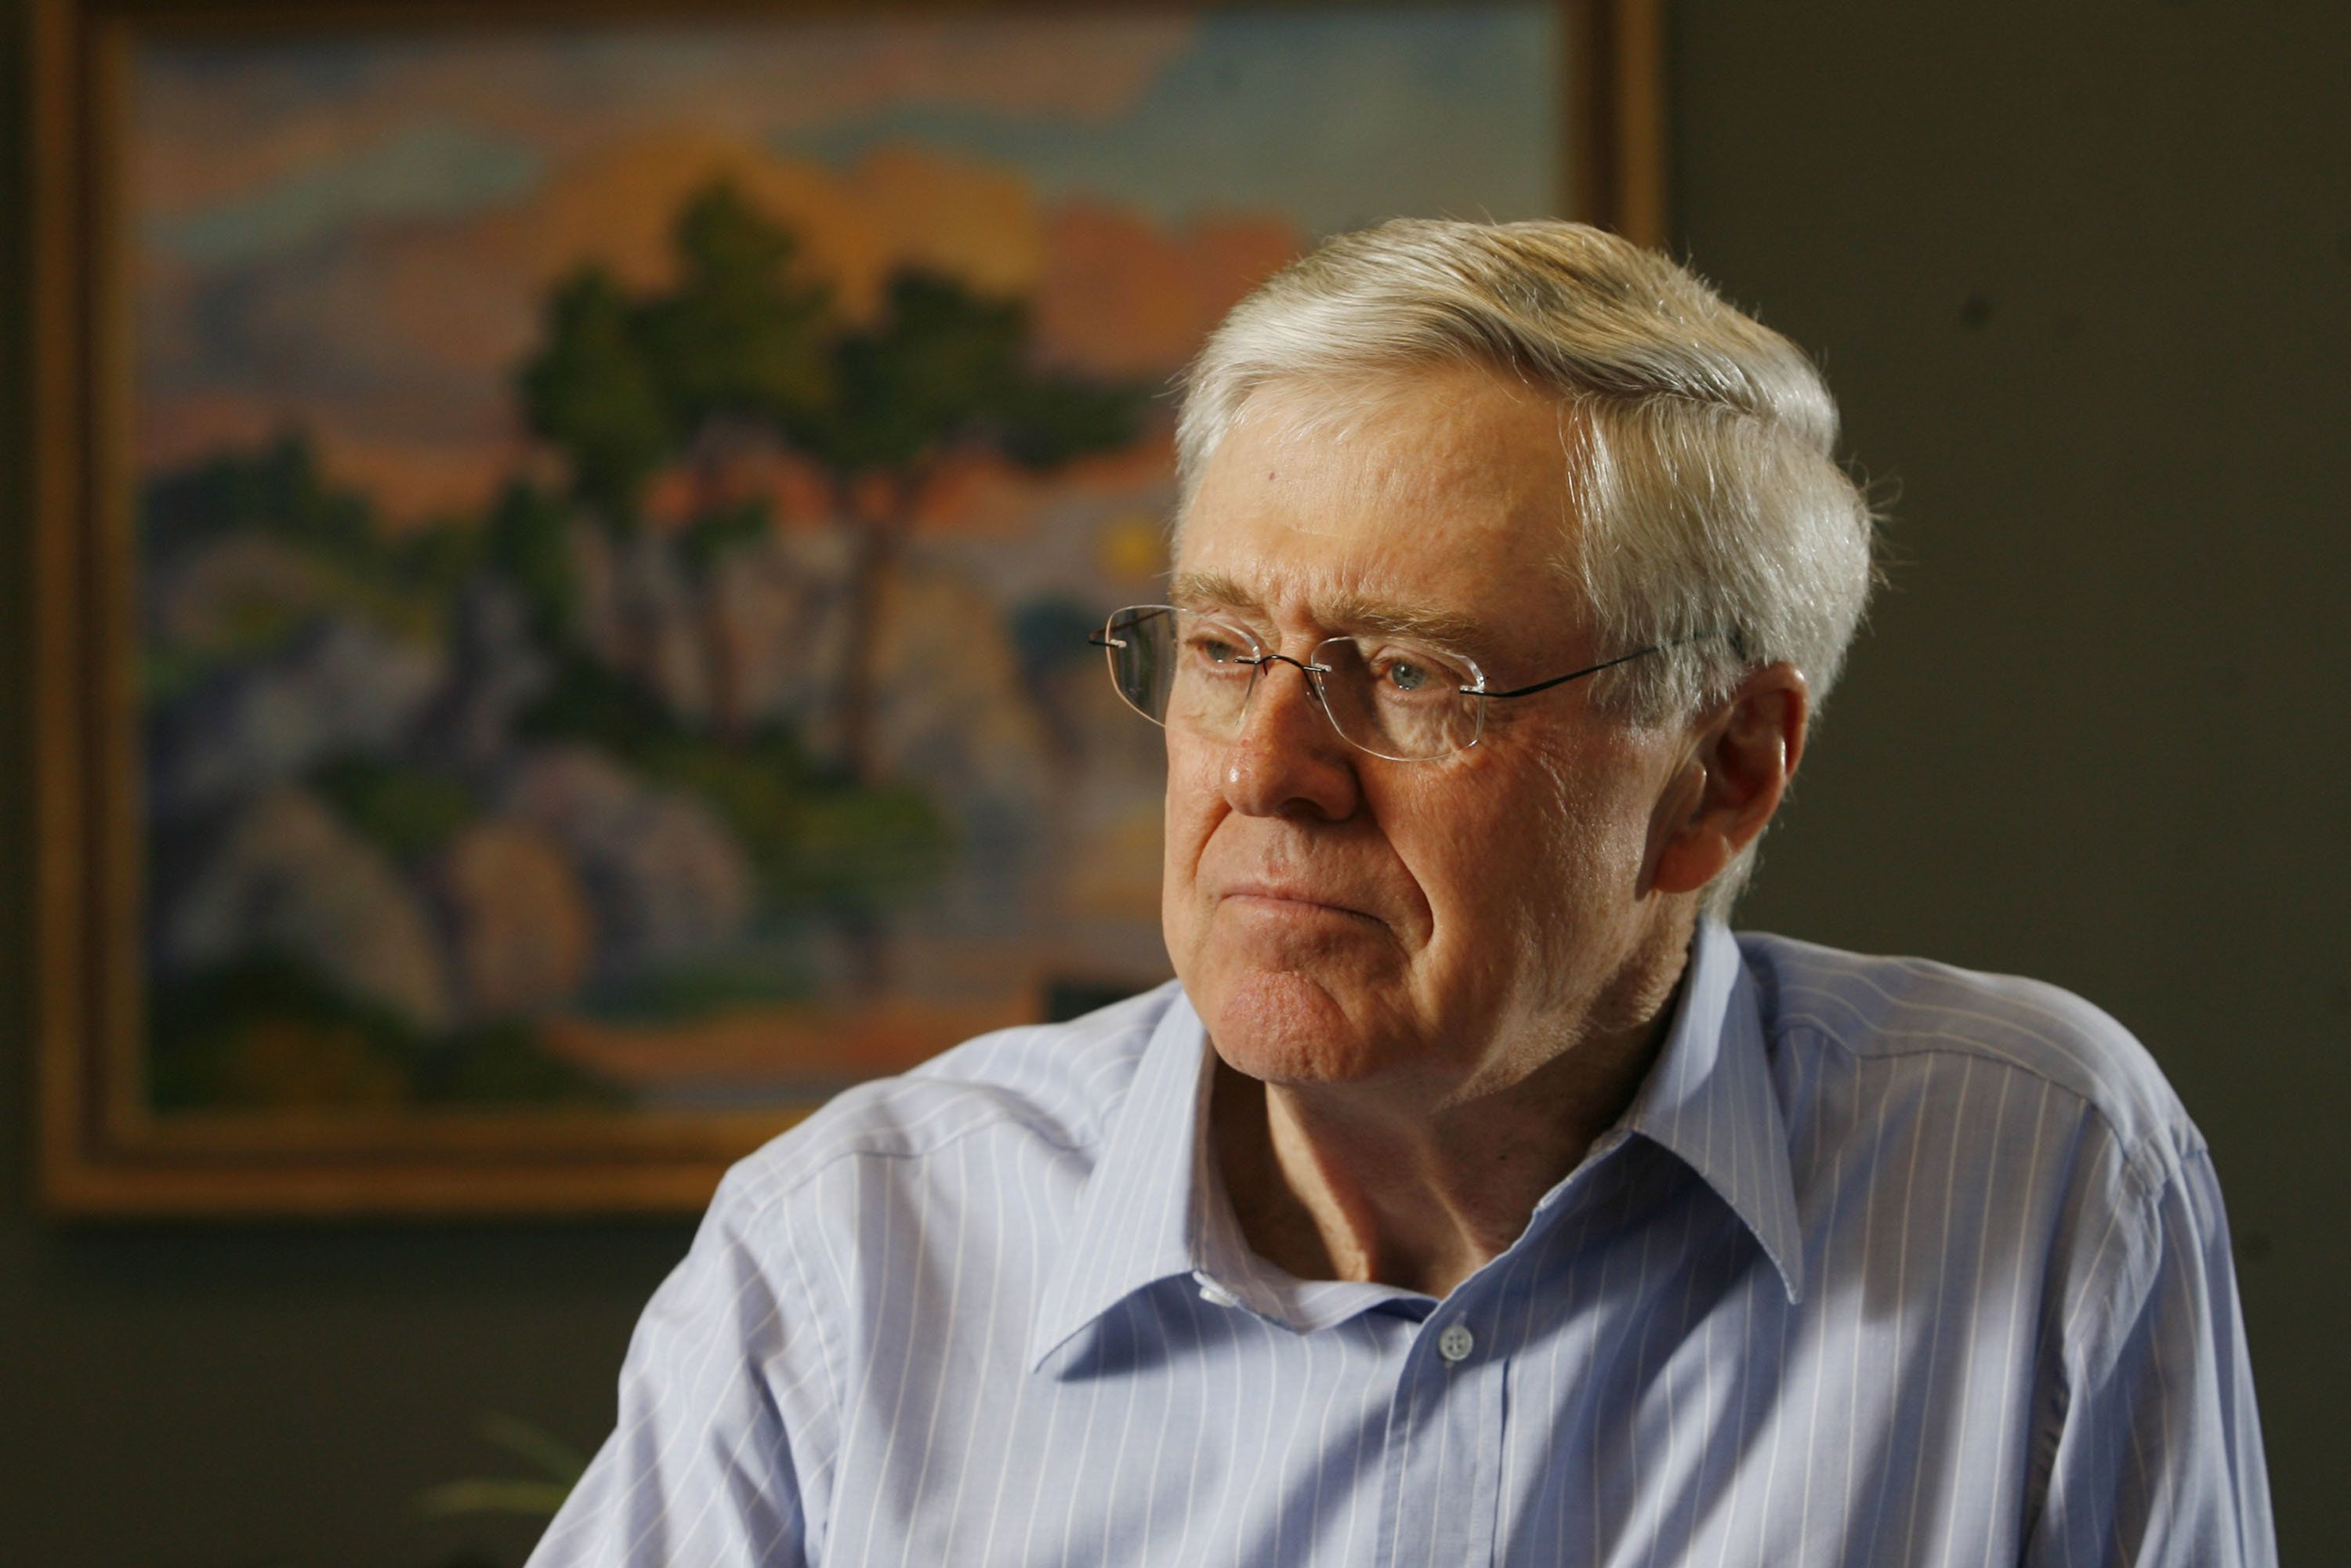 Multibillionaire Charles Koch, pictured in a 2007 file photo, founded the donor network to fund conservative causes.